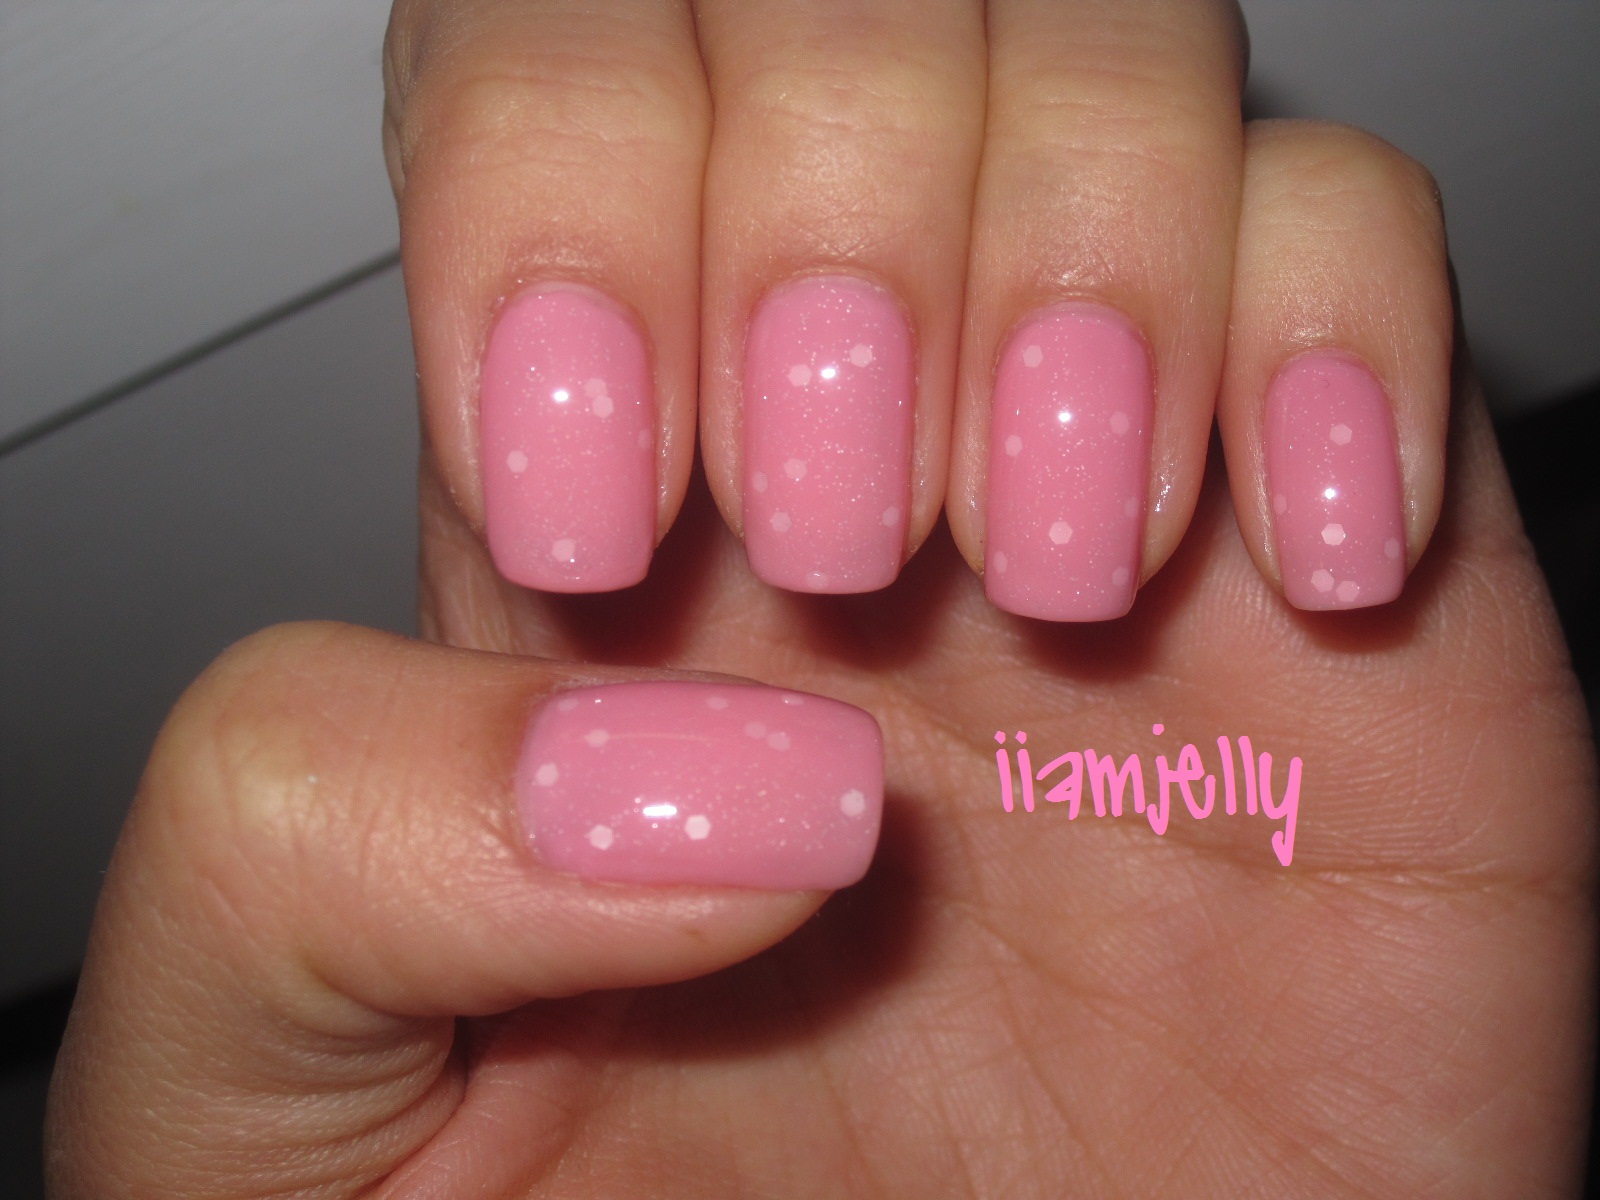 Jelly's Nails